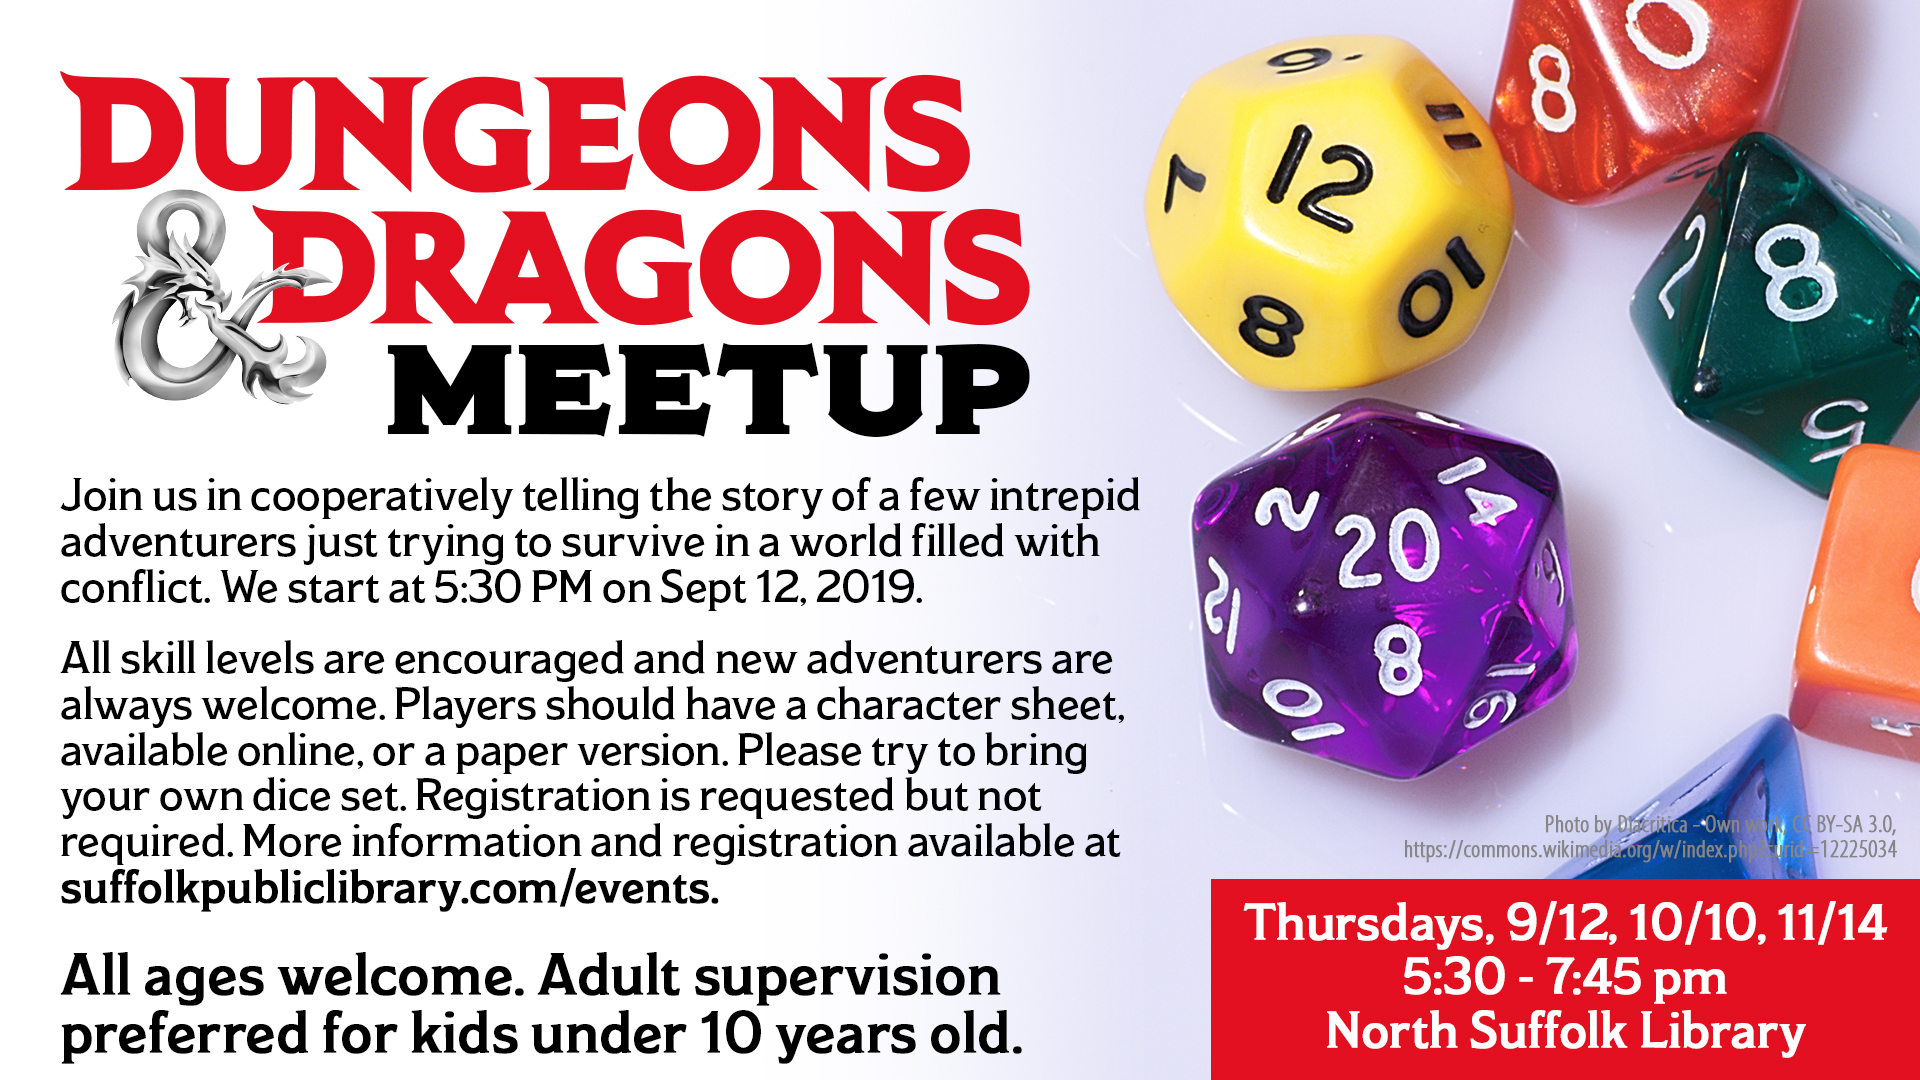 Dungeons & Dragons Meet-up